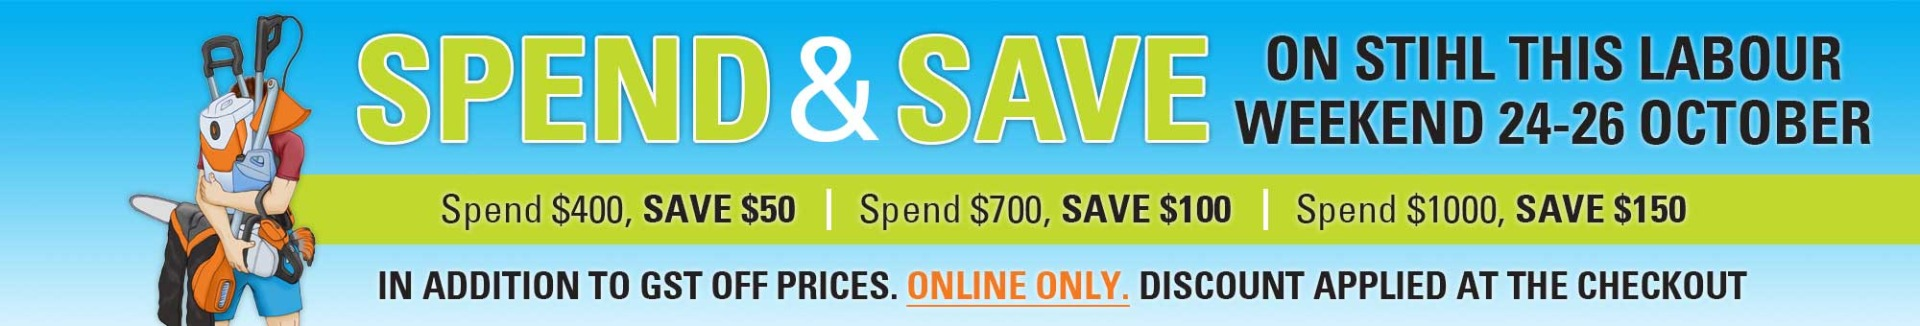 Labour weekend spend and save with STIHL SHOP